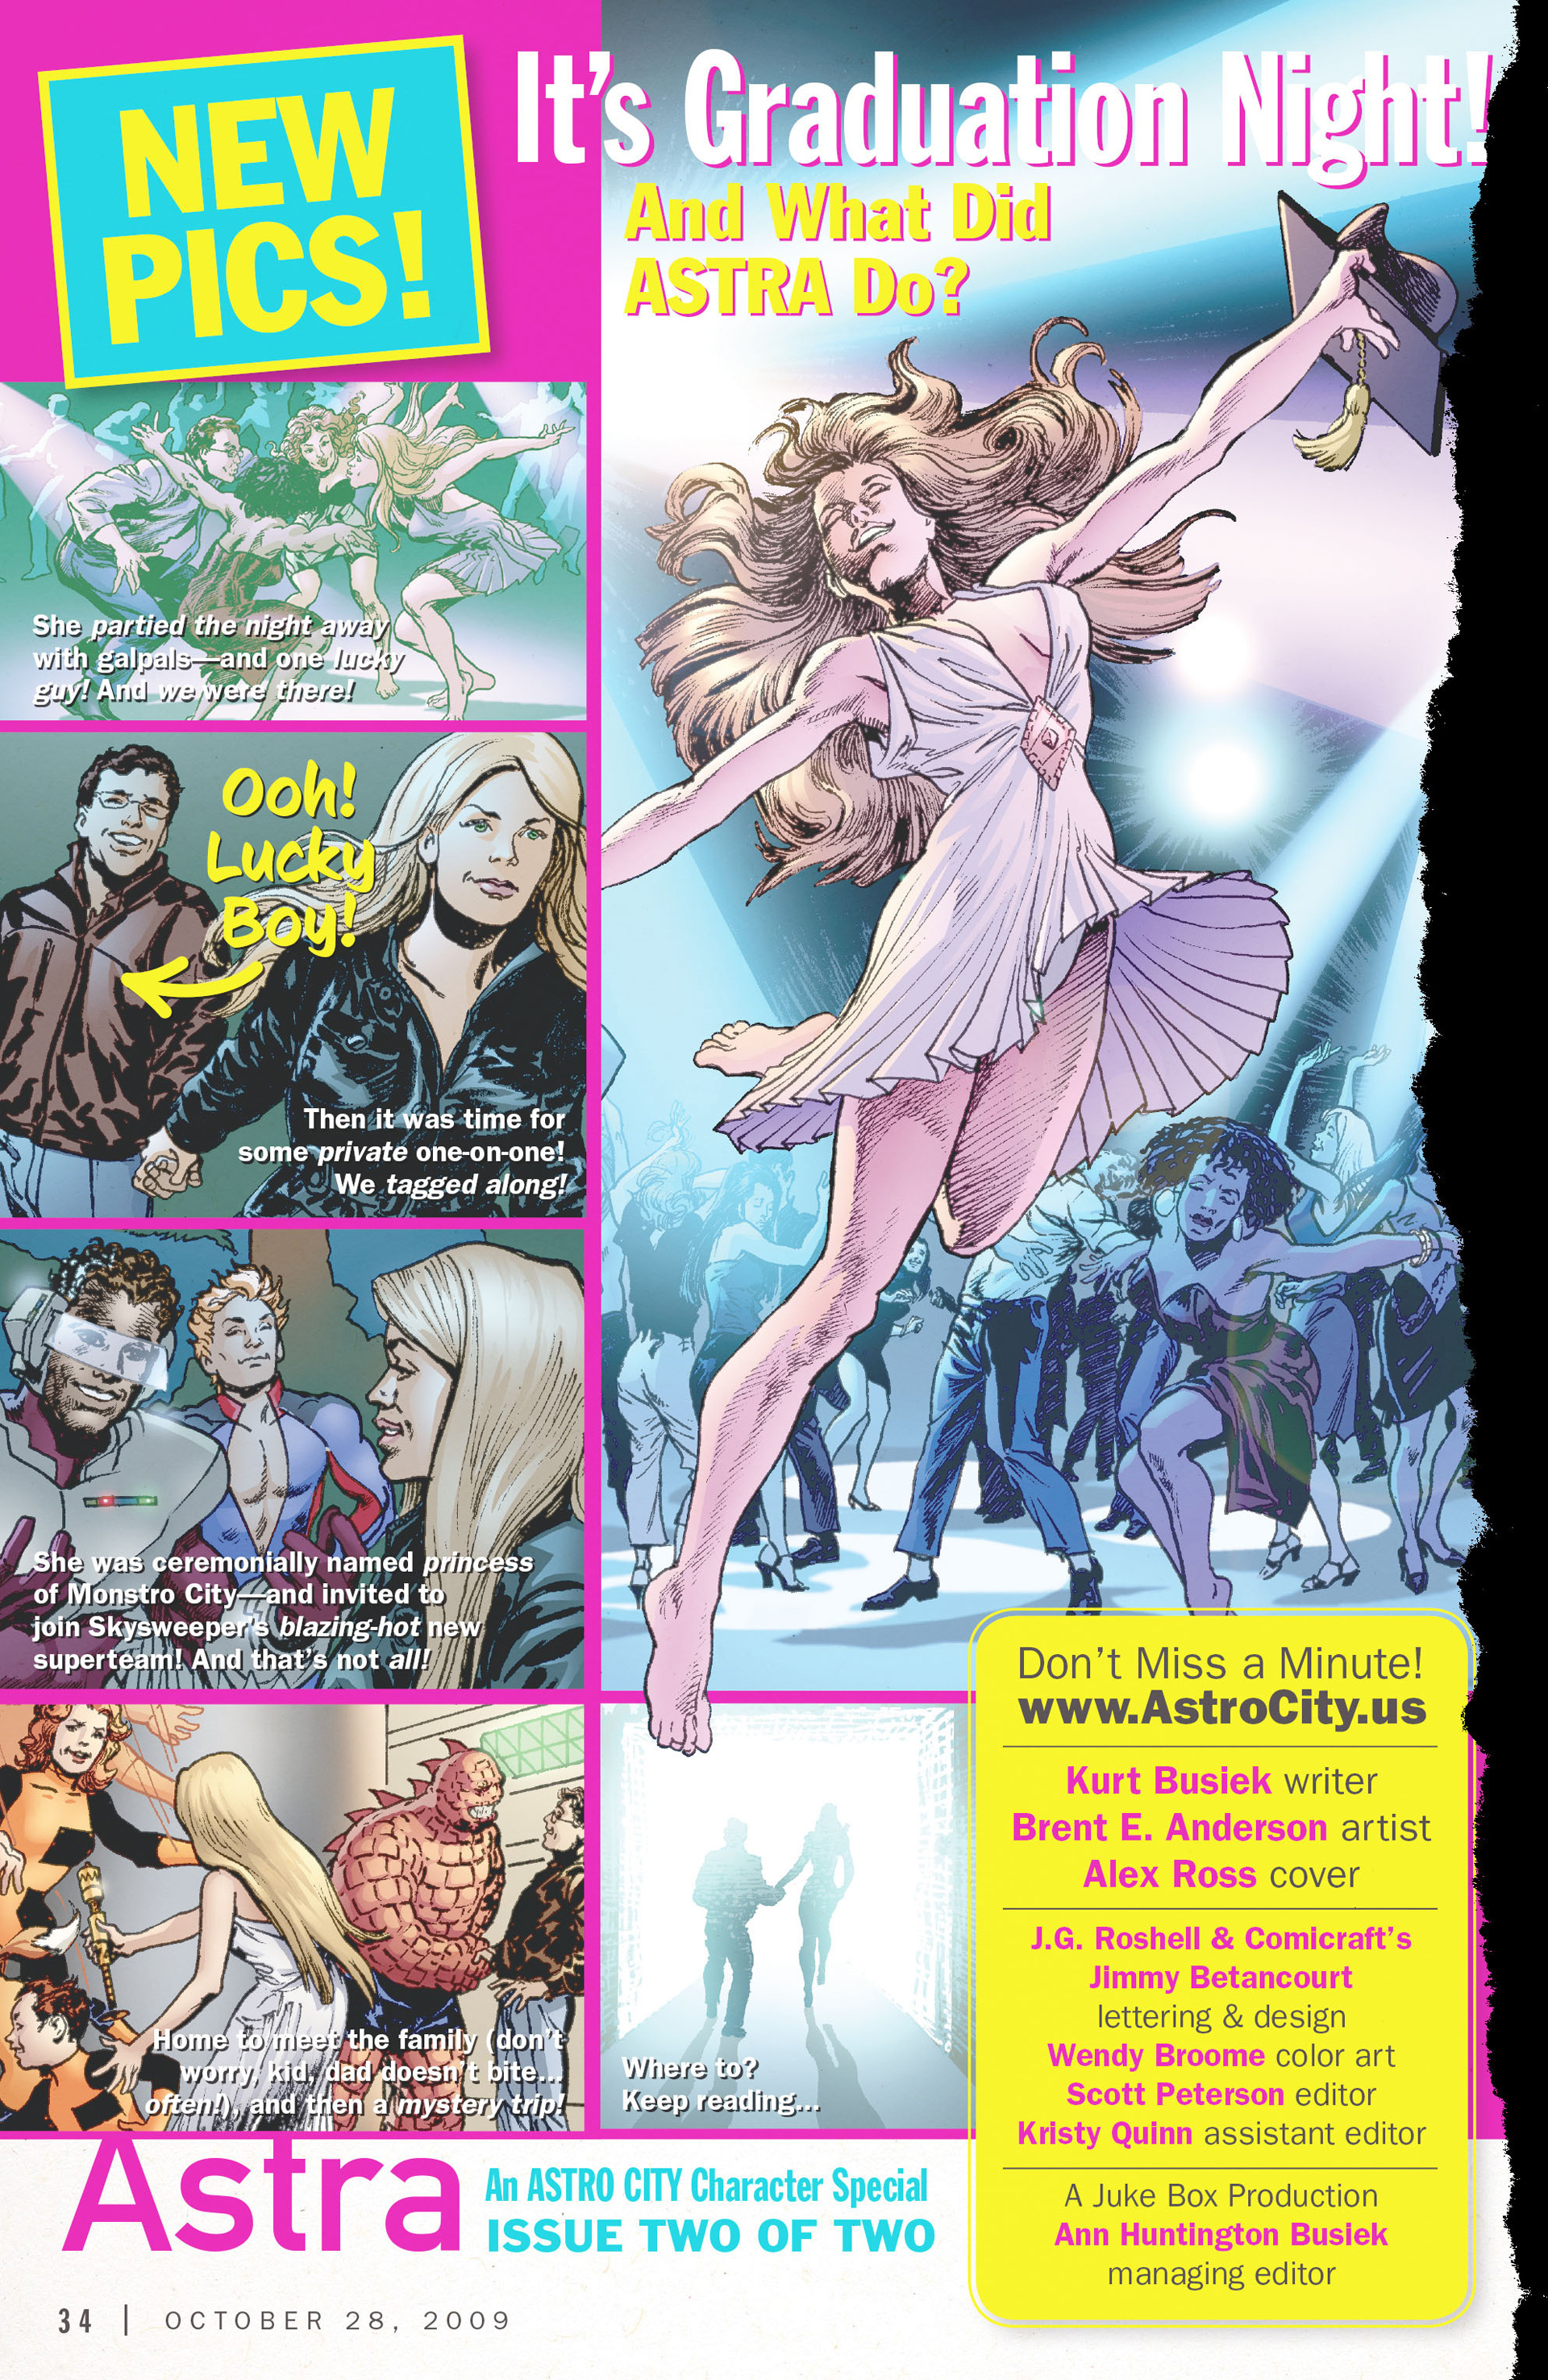 Read online Astro City: Astra Special comic -  Issue #2 - 2